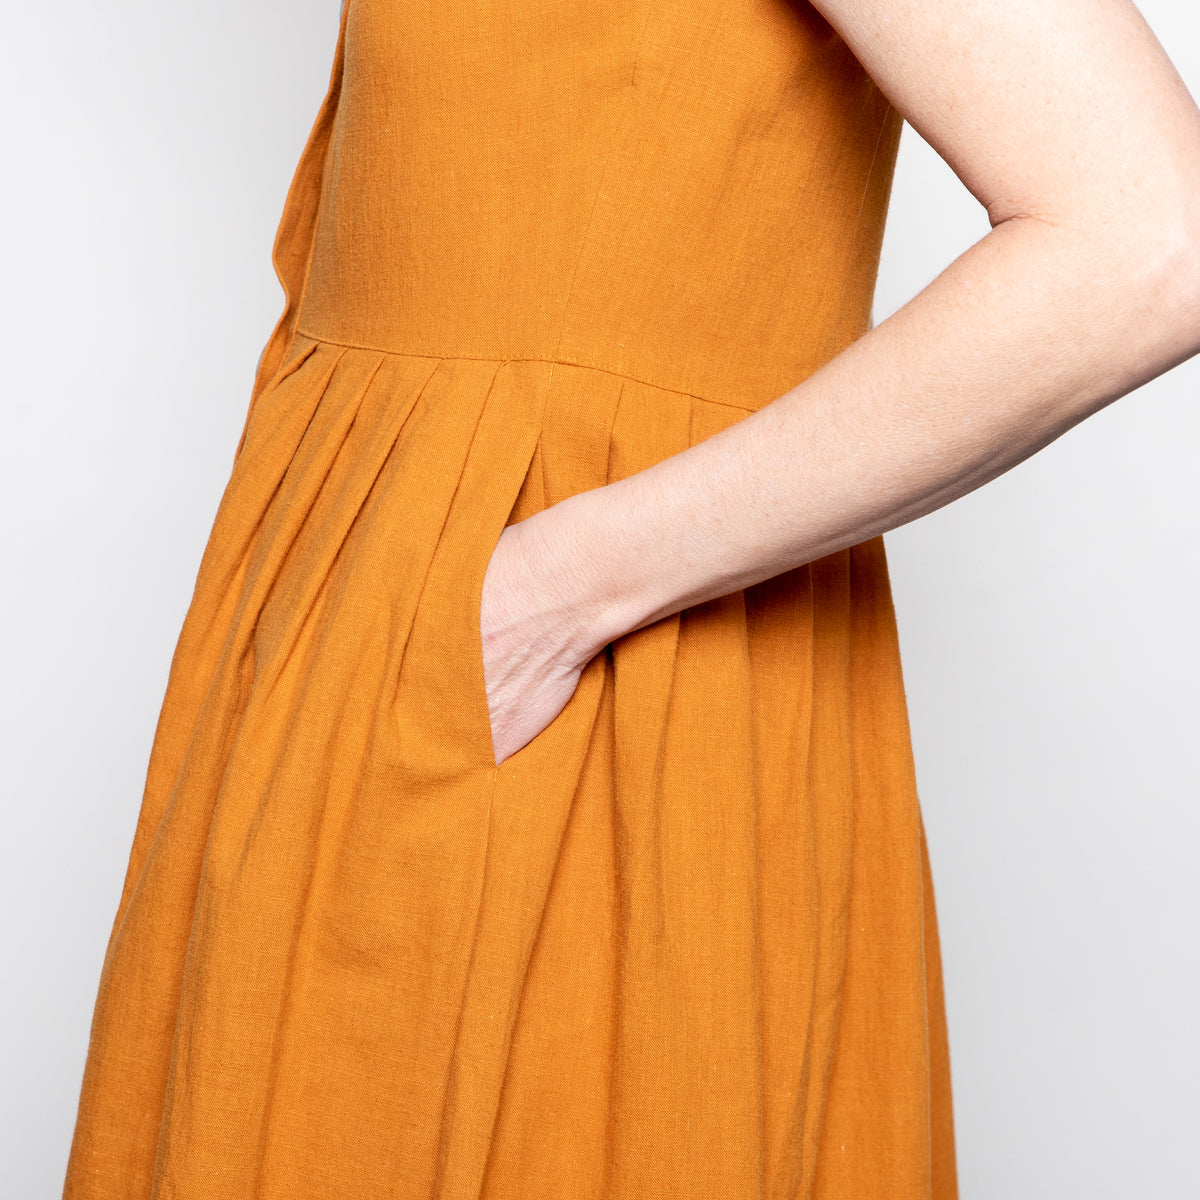 The Korner Lila Dress in Camel